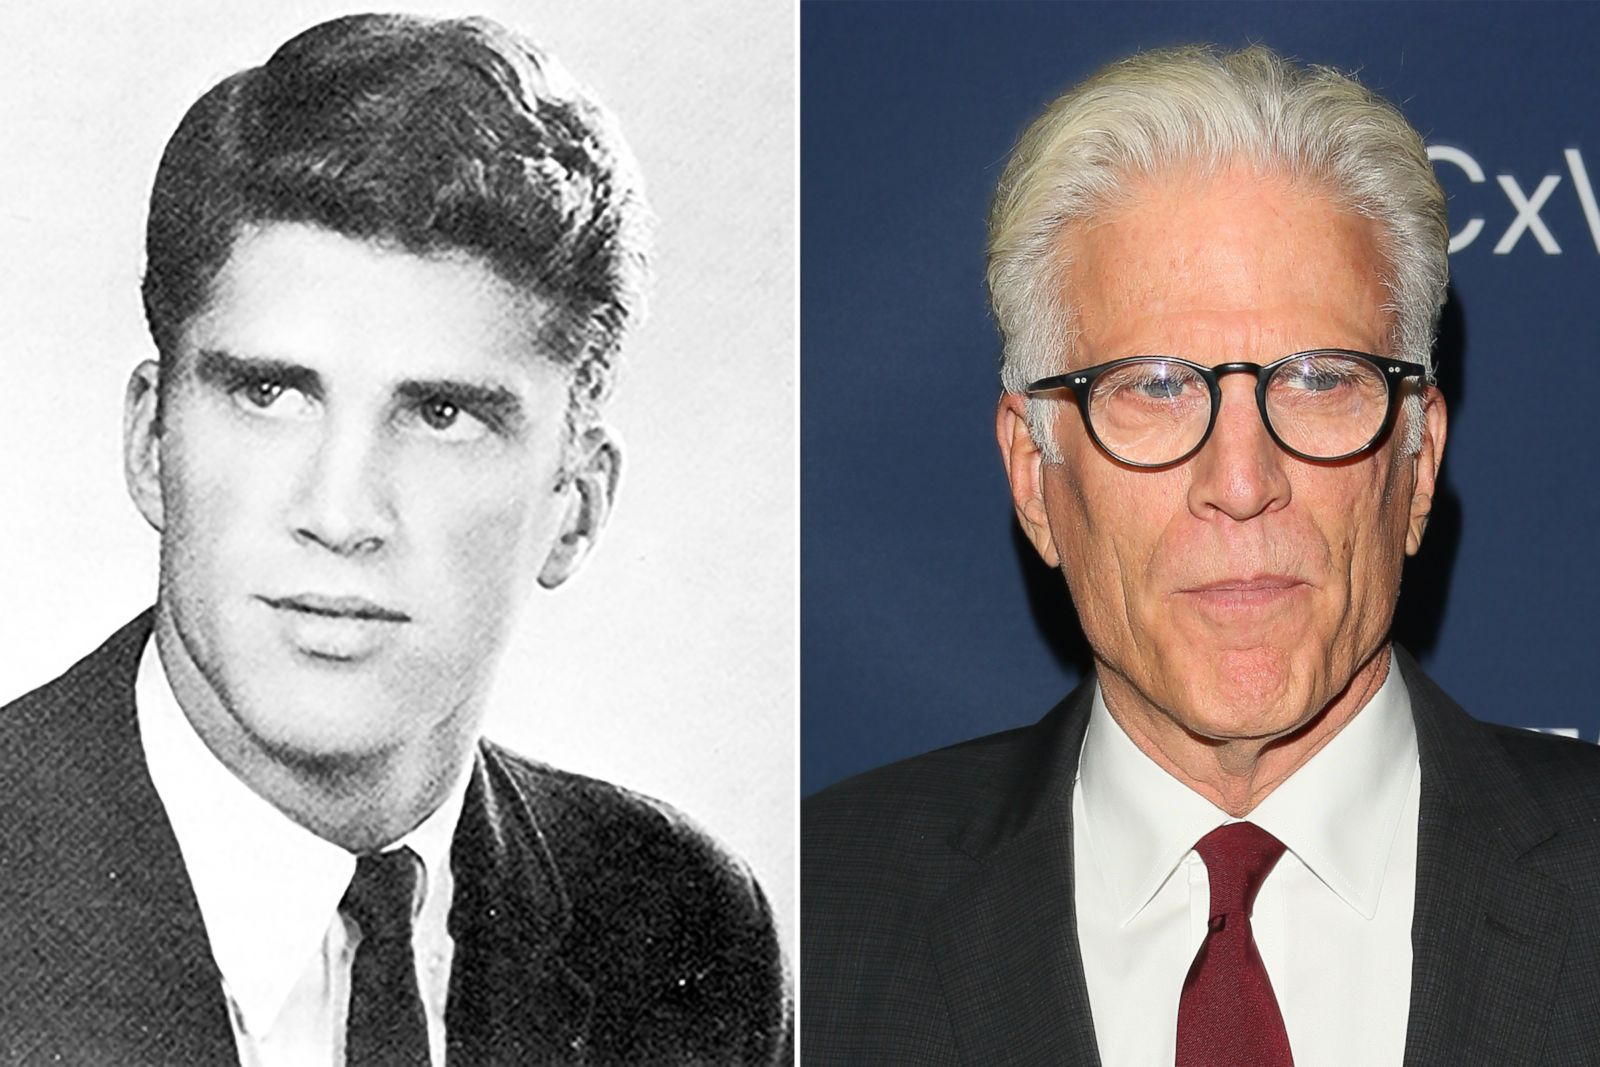 ' ' from the web at 'https://s.abcnews.com/images/Entertainment/HT-GTY-ted-danson-ml-161228_3x2_1600.jpg'